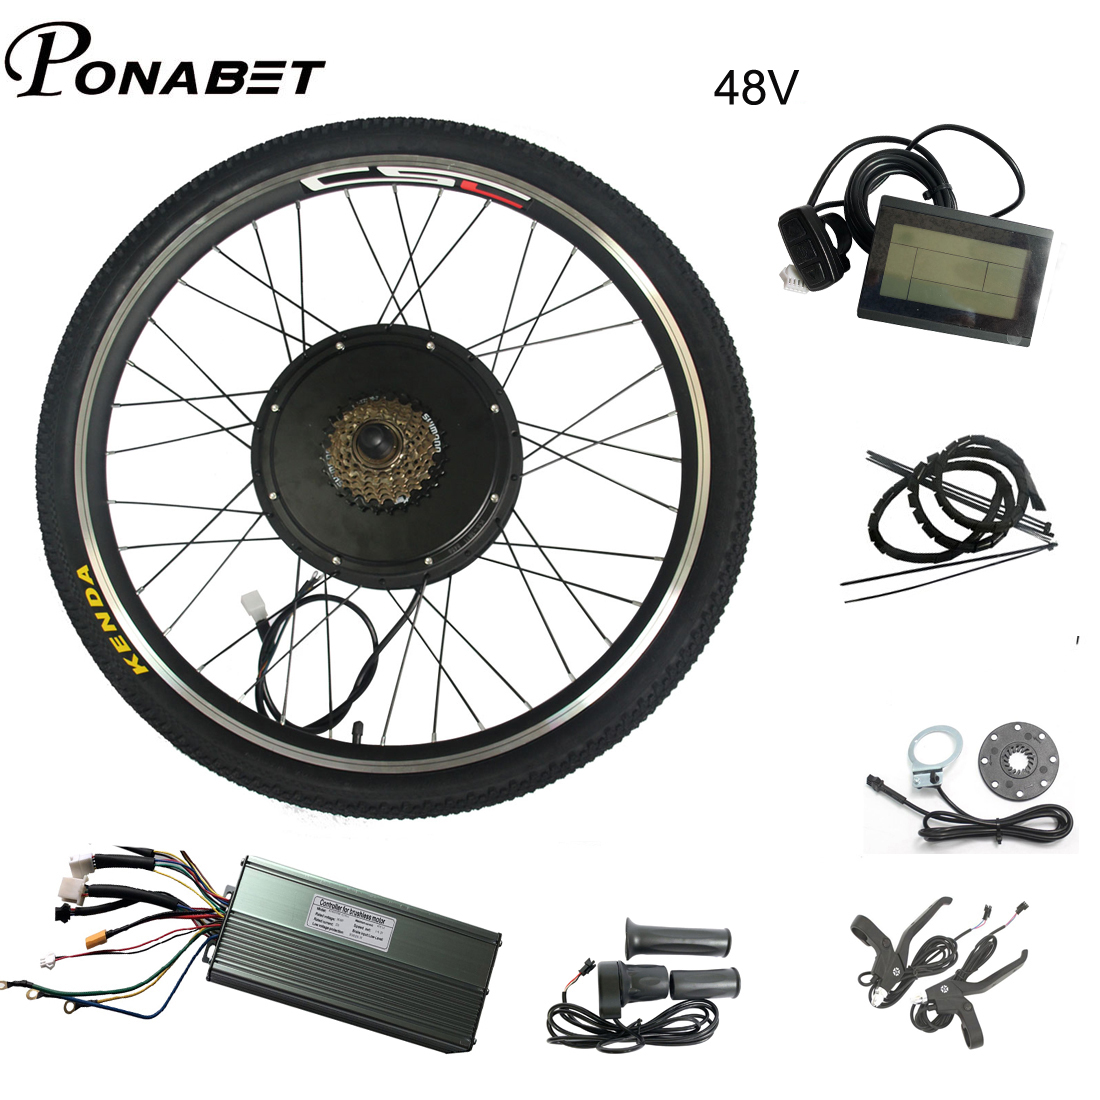 36v 48v electric bicycle battery 20 24 27 5 28 29 inch electric bike conversion kit